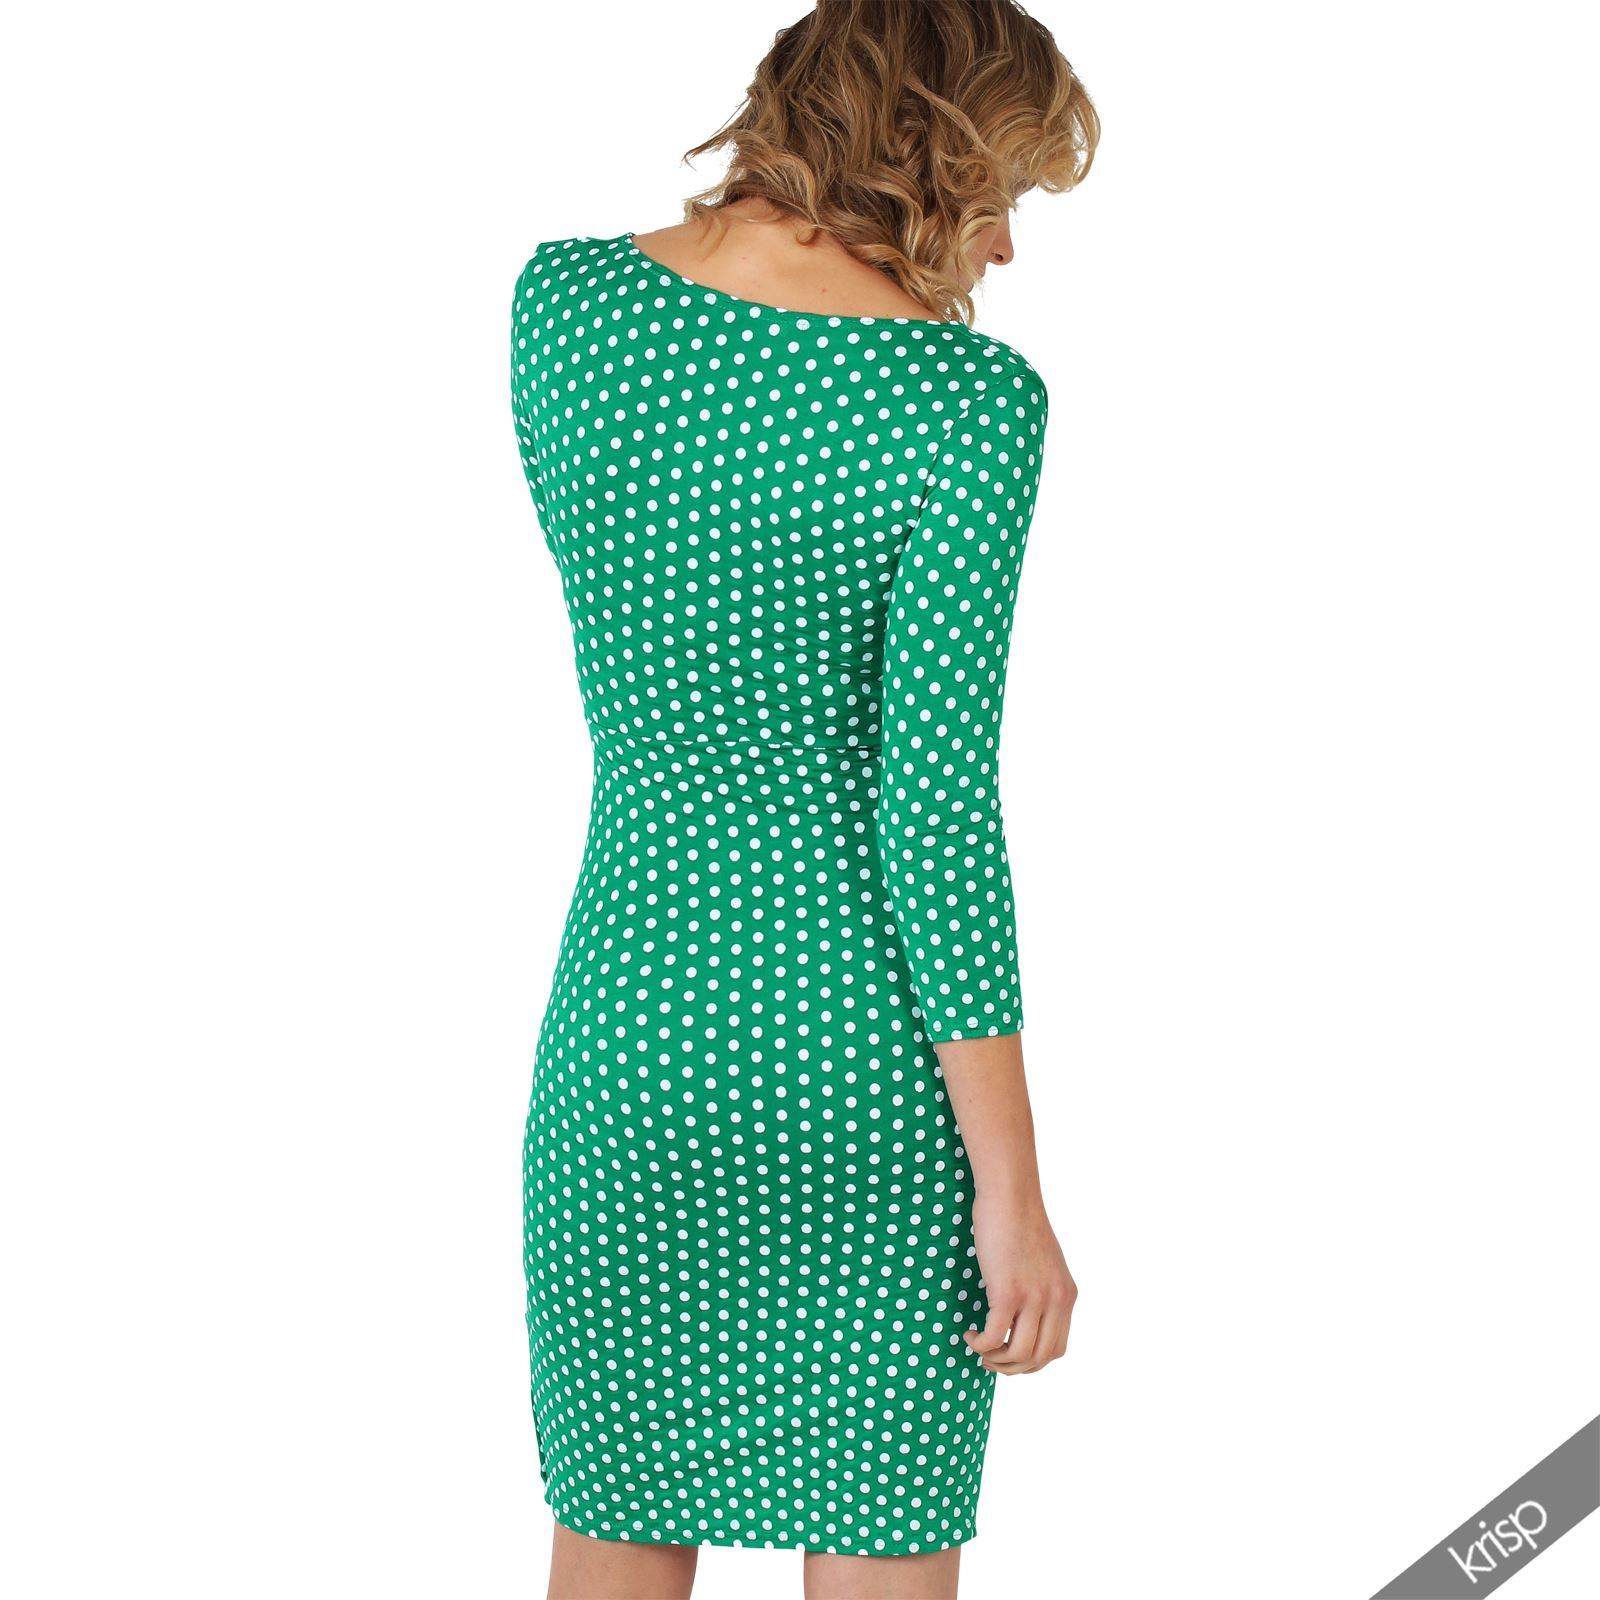 Womens-Polka-Dot-Dress-Pleated-Skirt-Wrap-Front-Midi-V-Neck-Top-Swing-Party thumbnail 7